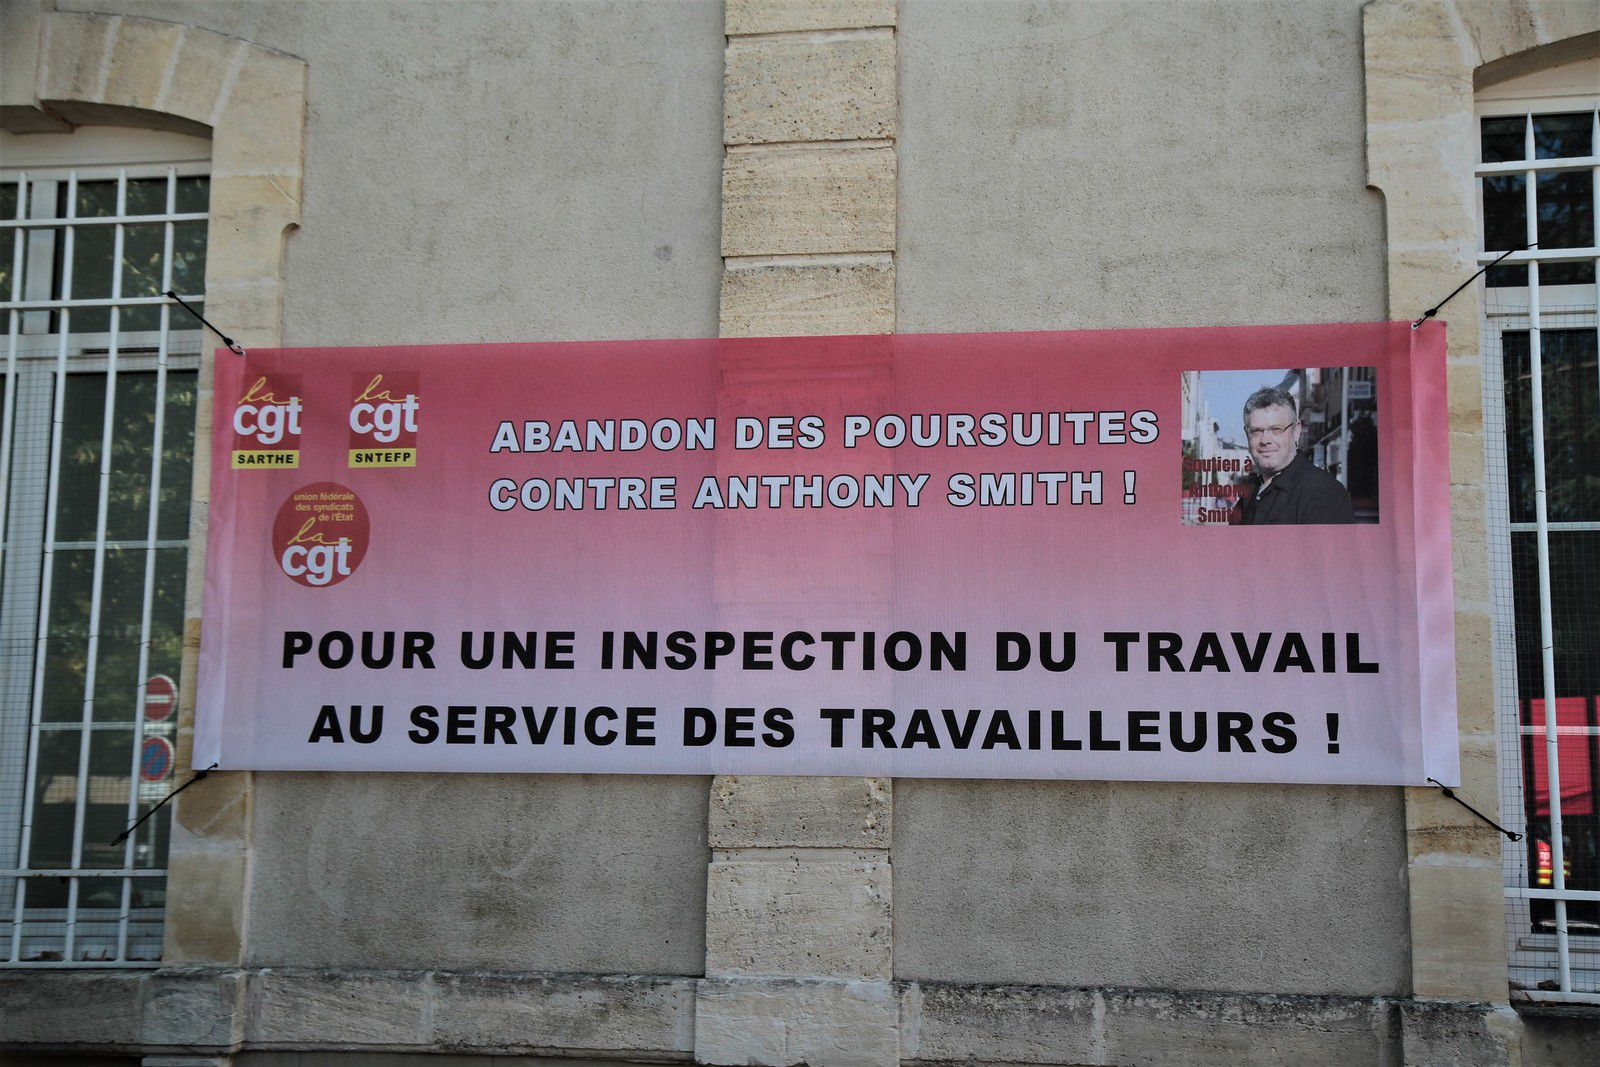 21.07.2020 Justice pour Anthony Smith